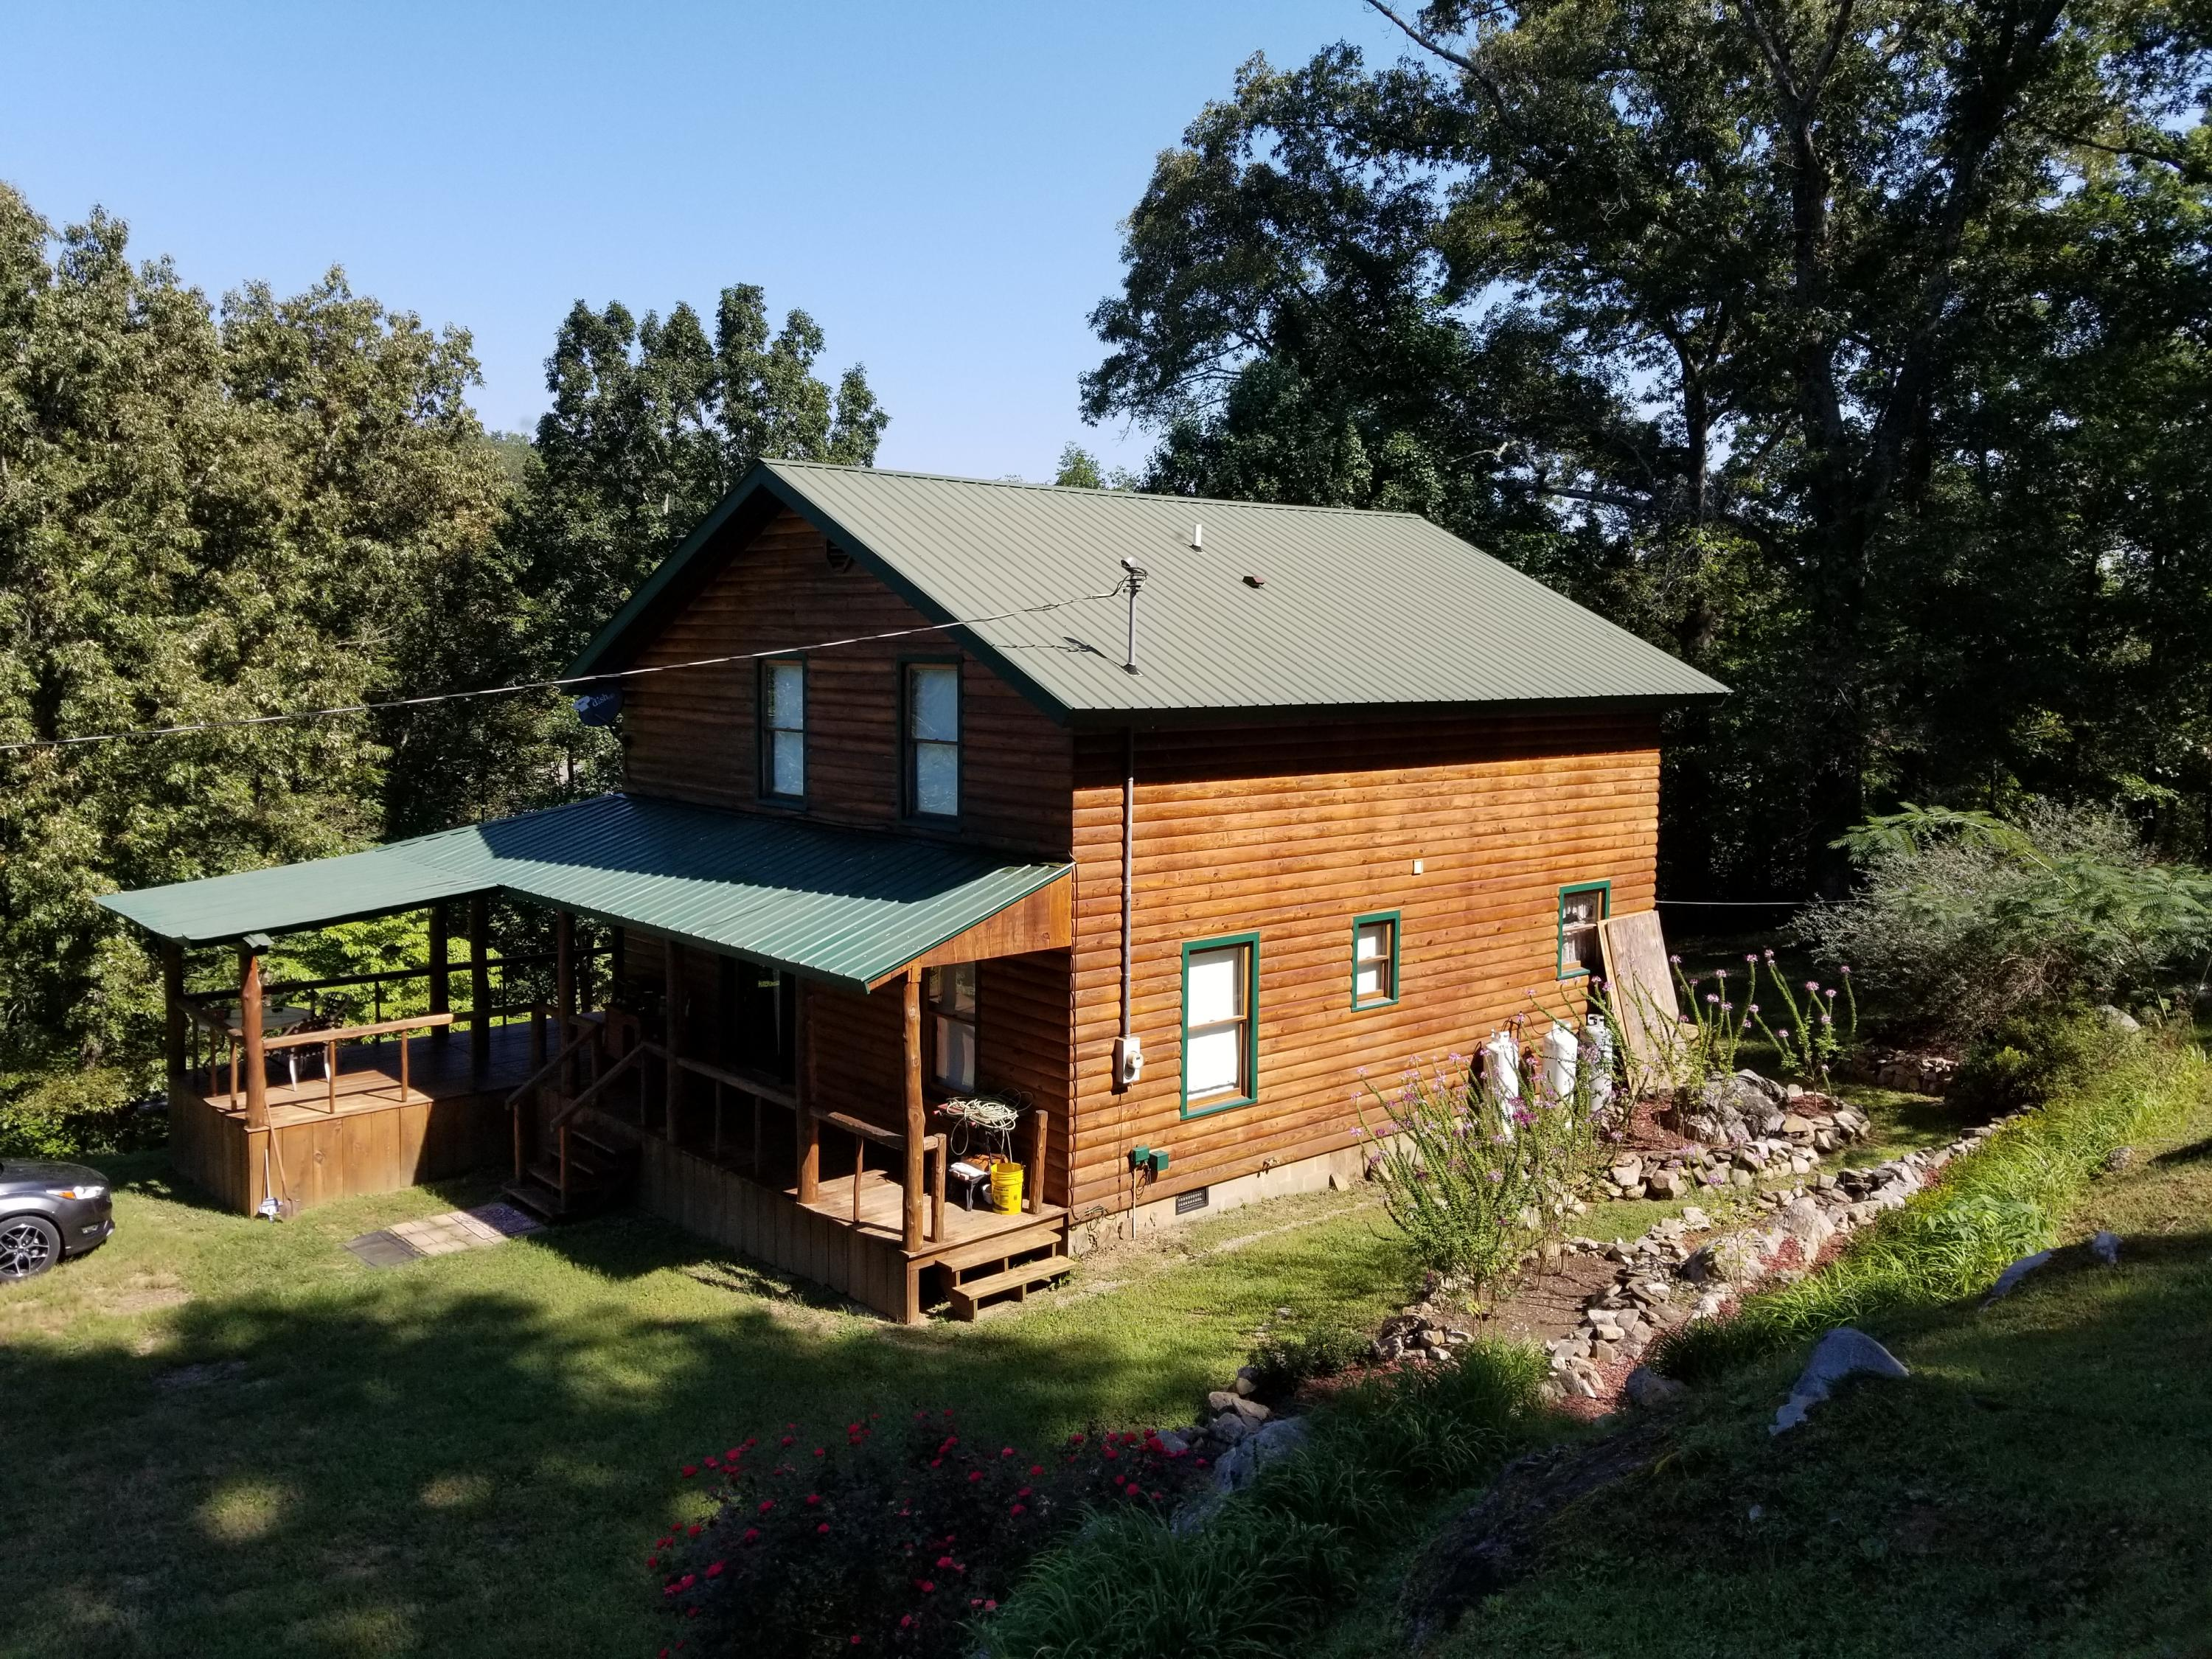 389 Mcgaha Chapel Rd, Cosby, Tennessee 37722, 3 Bedrooms Bedrooms, ,2 BathroomsBathrooms,Single Family,For Sale,Mcgaha Chapel,1057160